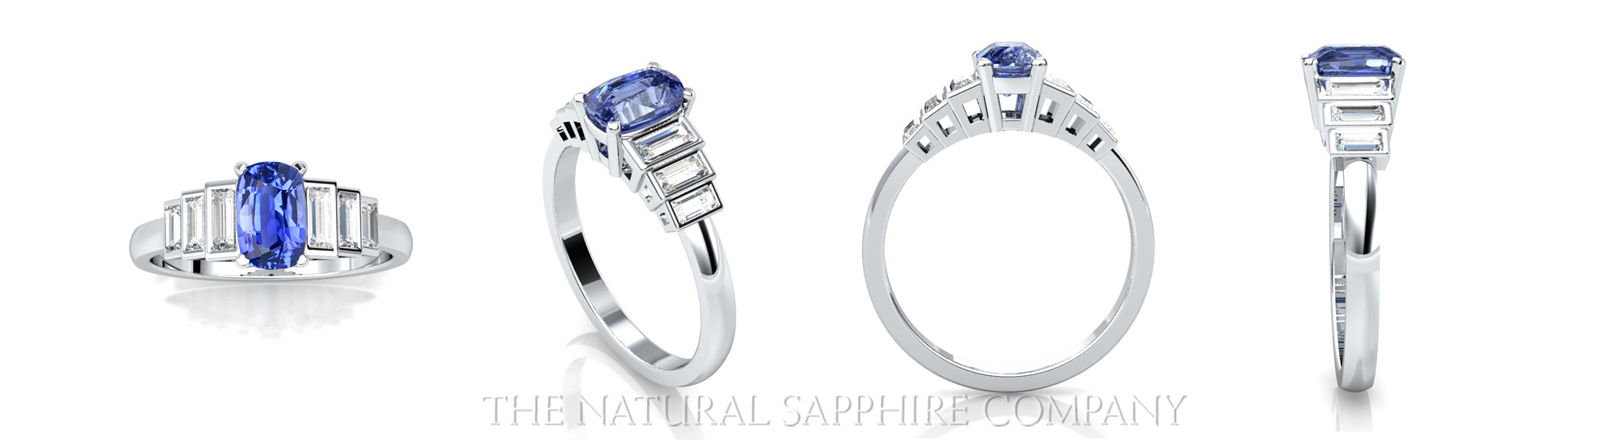 rendering images of blue sapphire rings in white gold